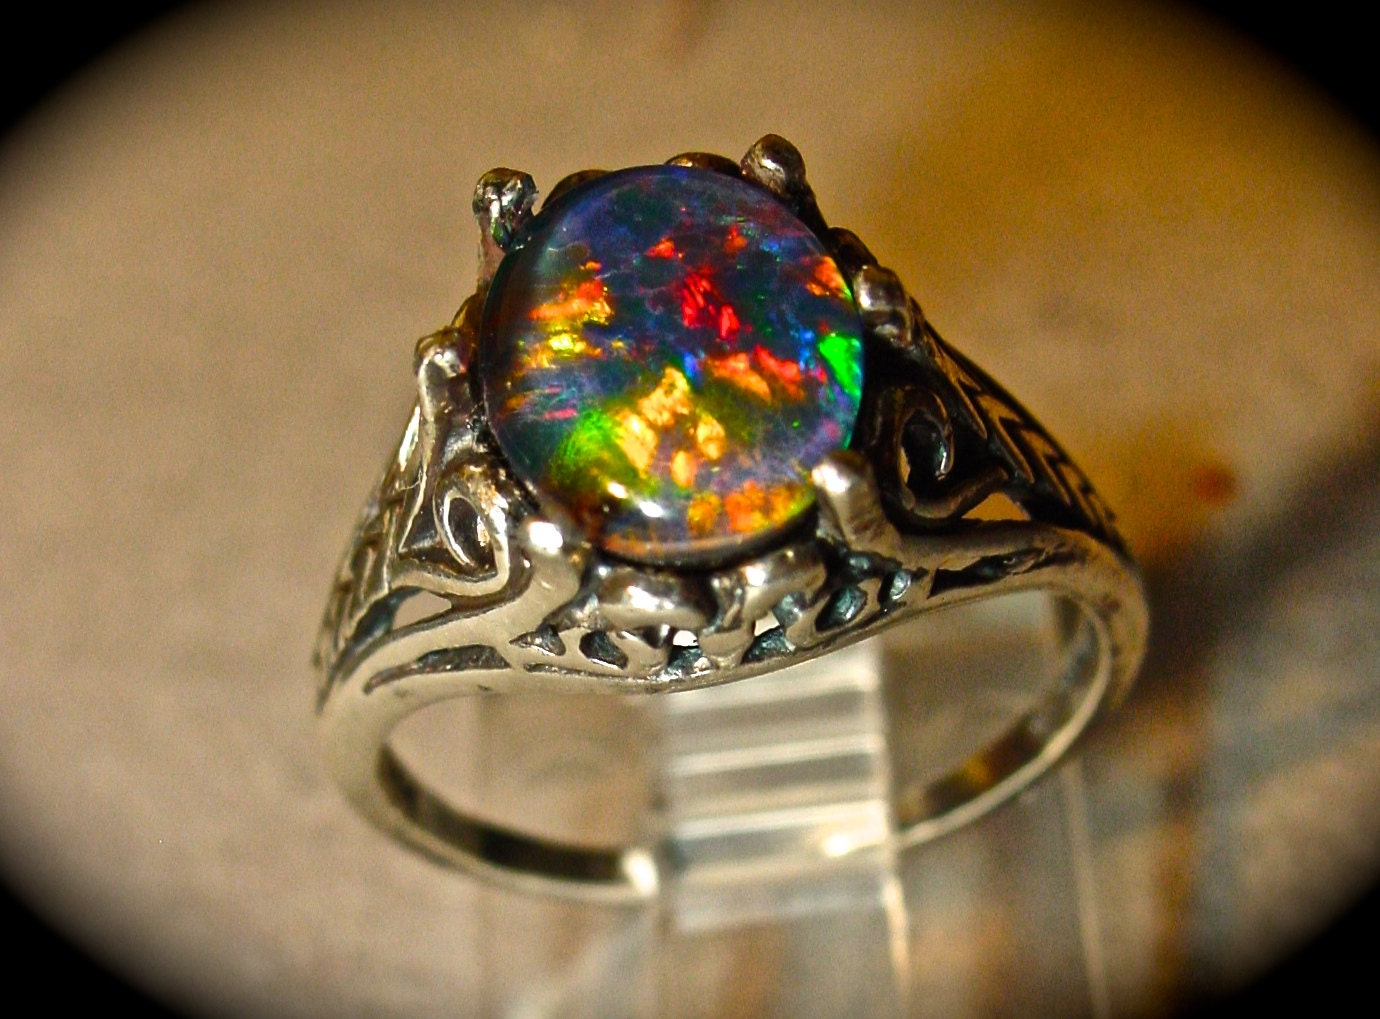 Antique Filigree style Opal Engagement Ring Spectacular